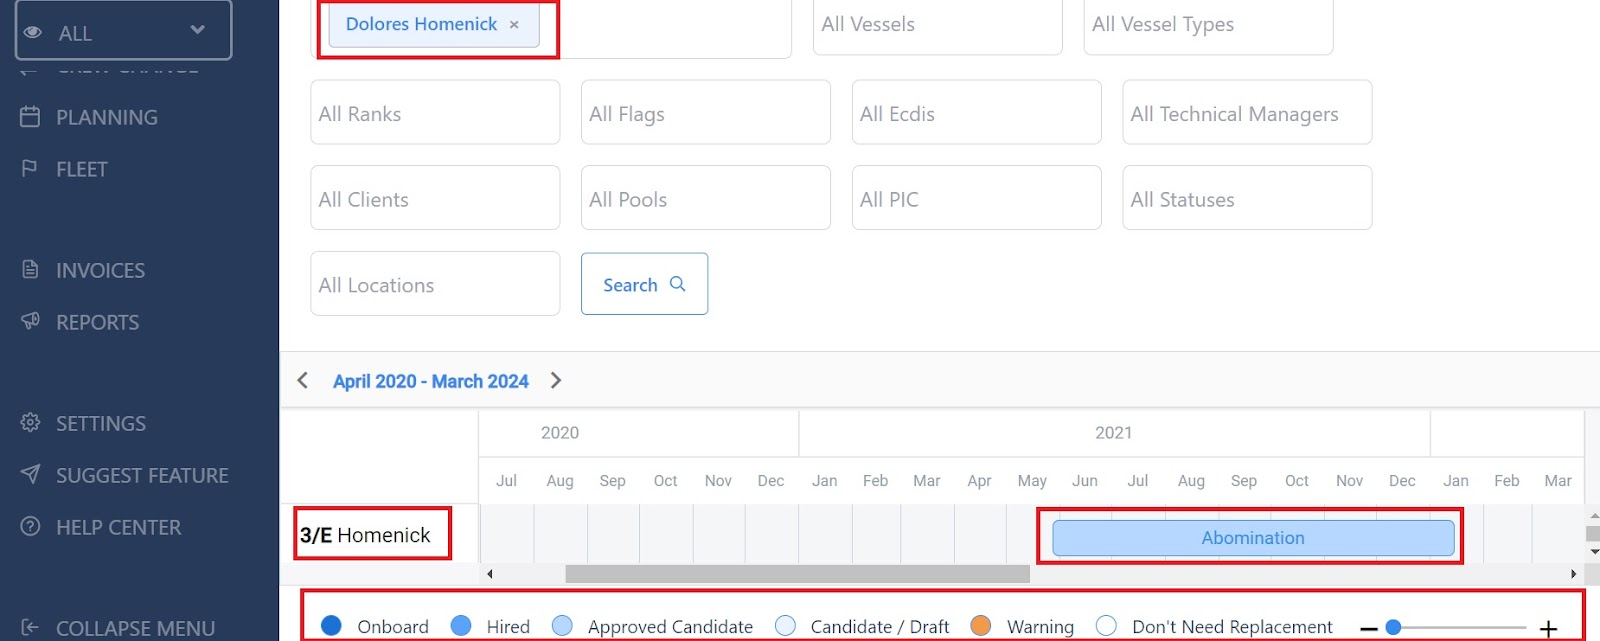 screenshot of the page showing Dolores' calendar